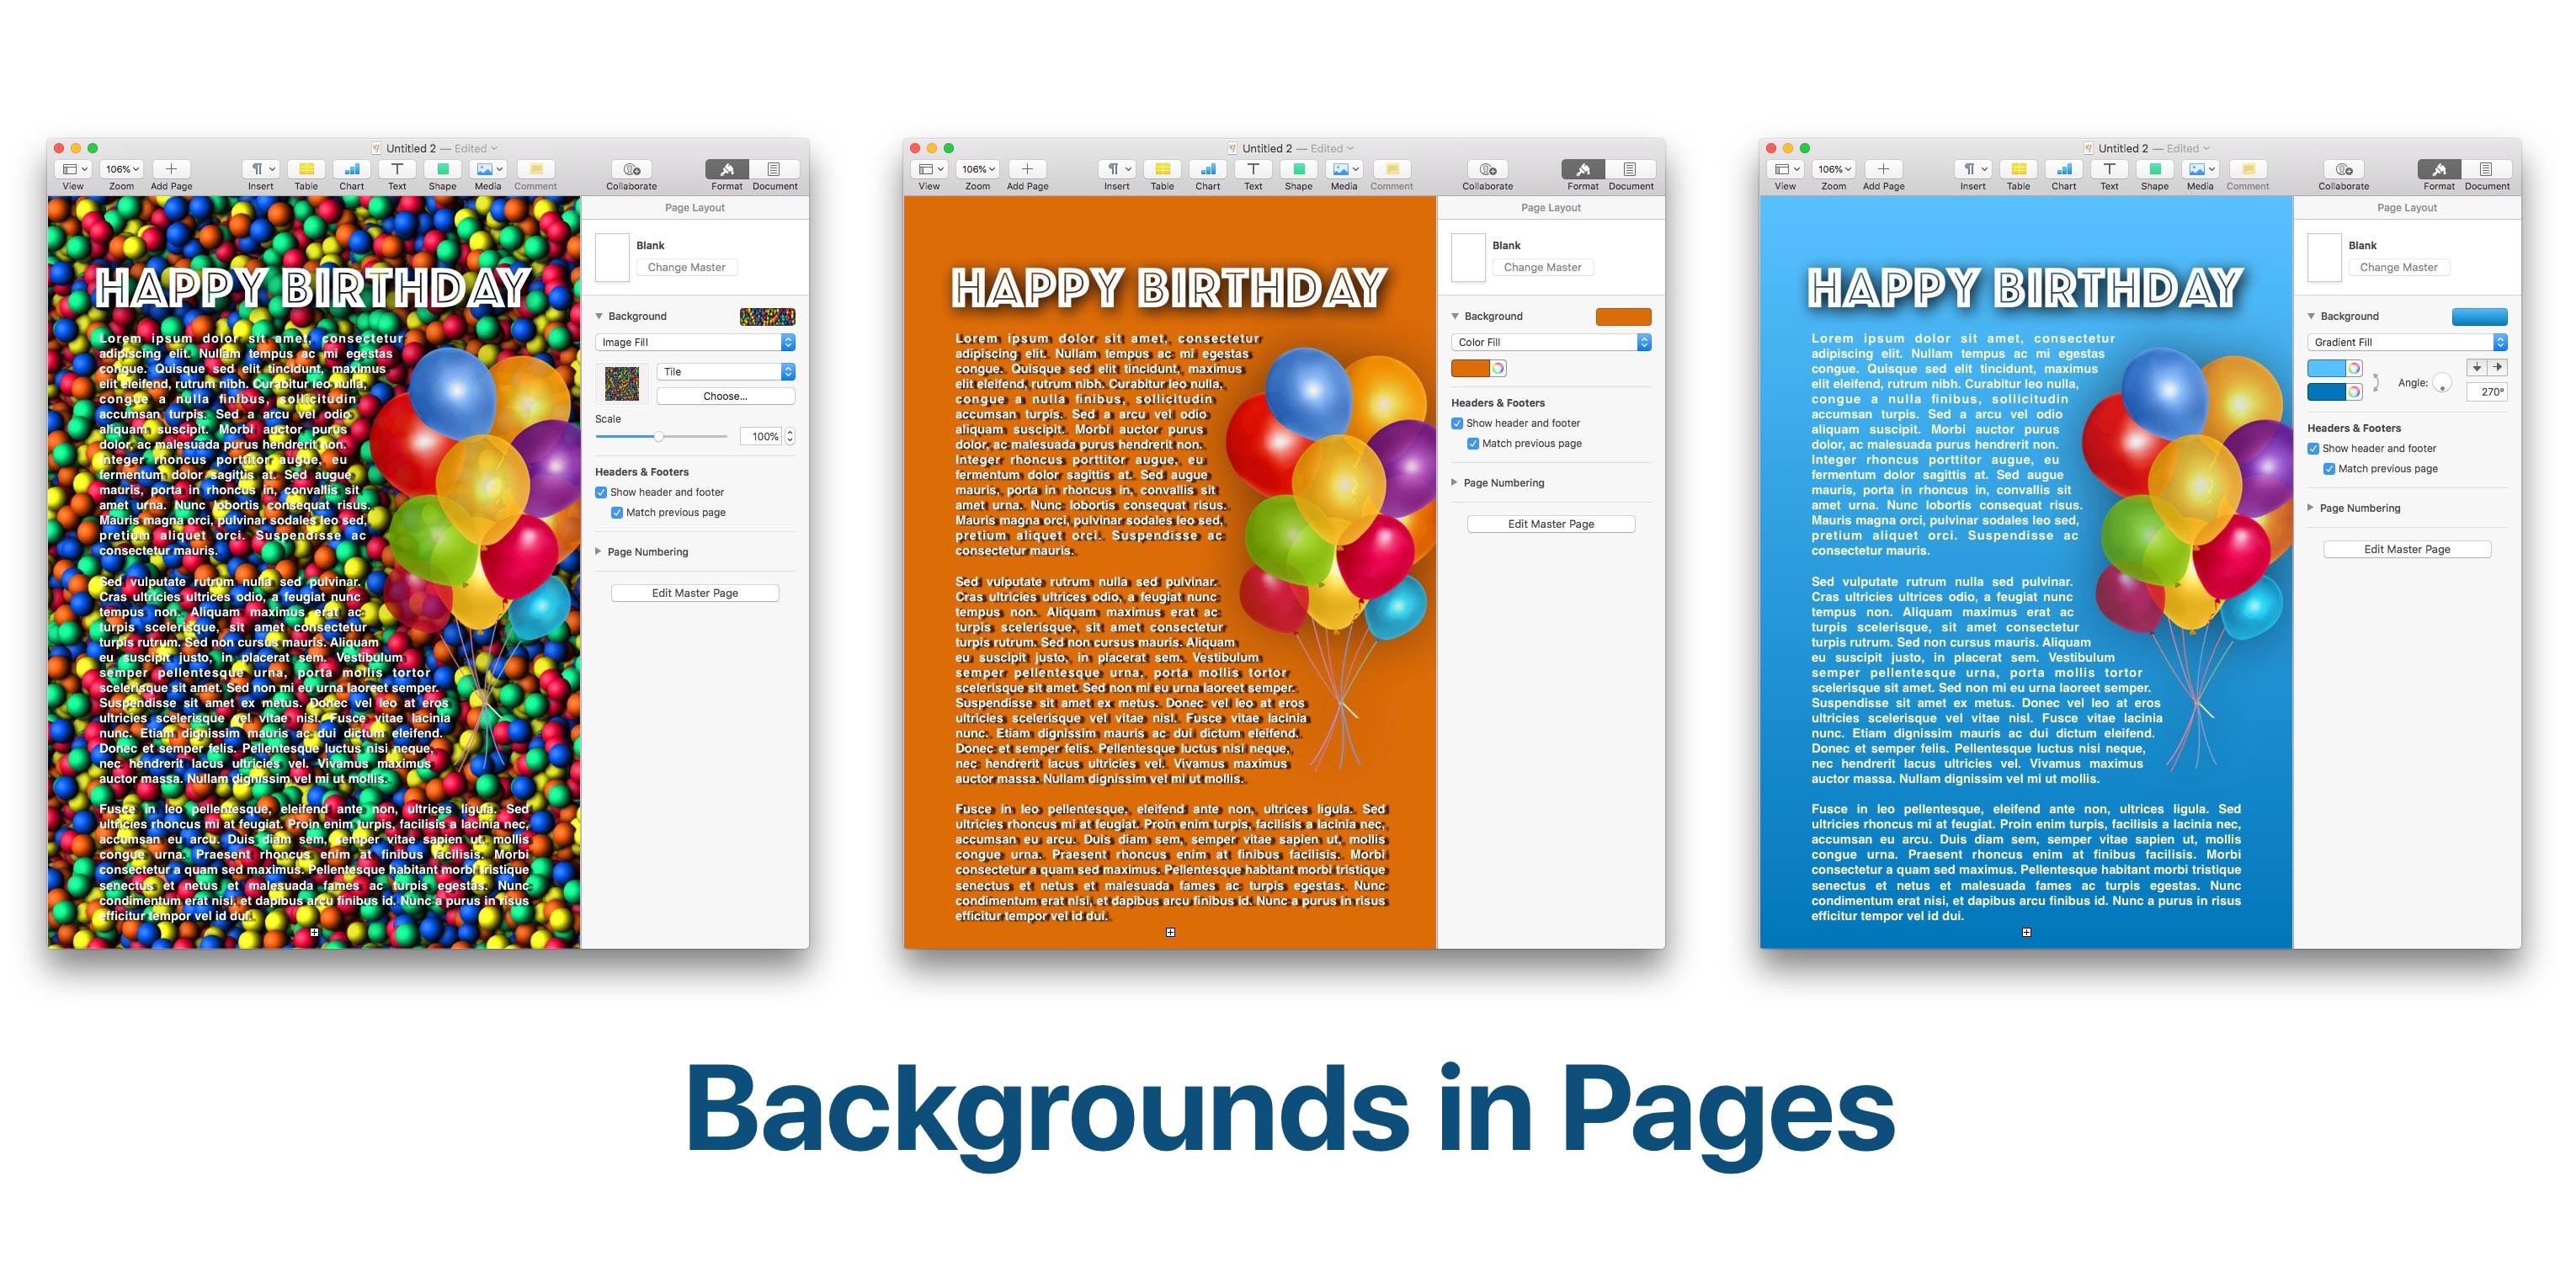 How to change background color in Pages